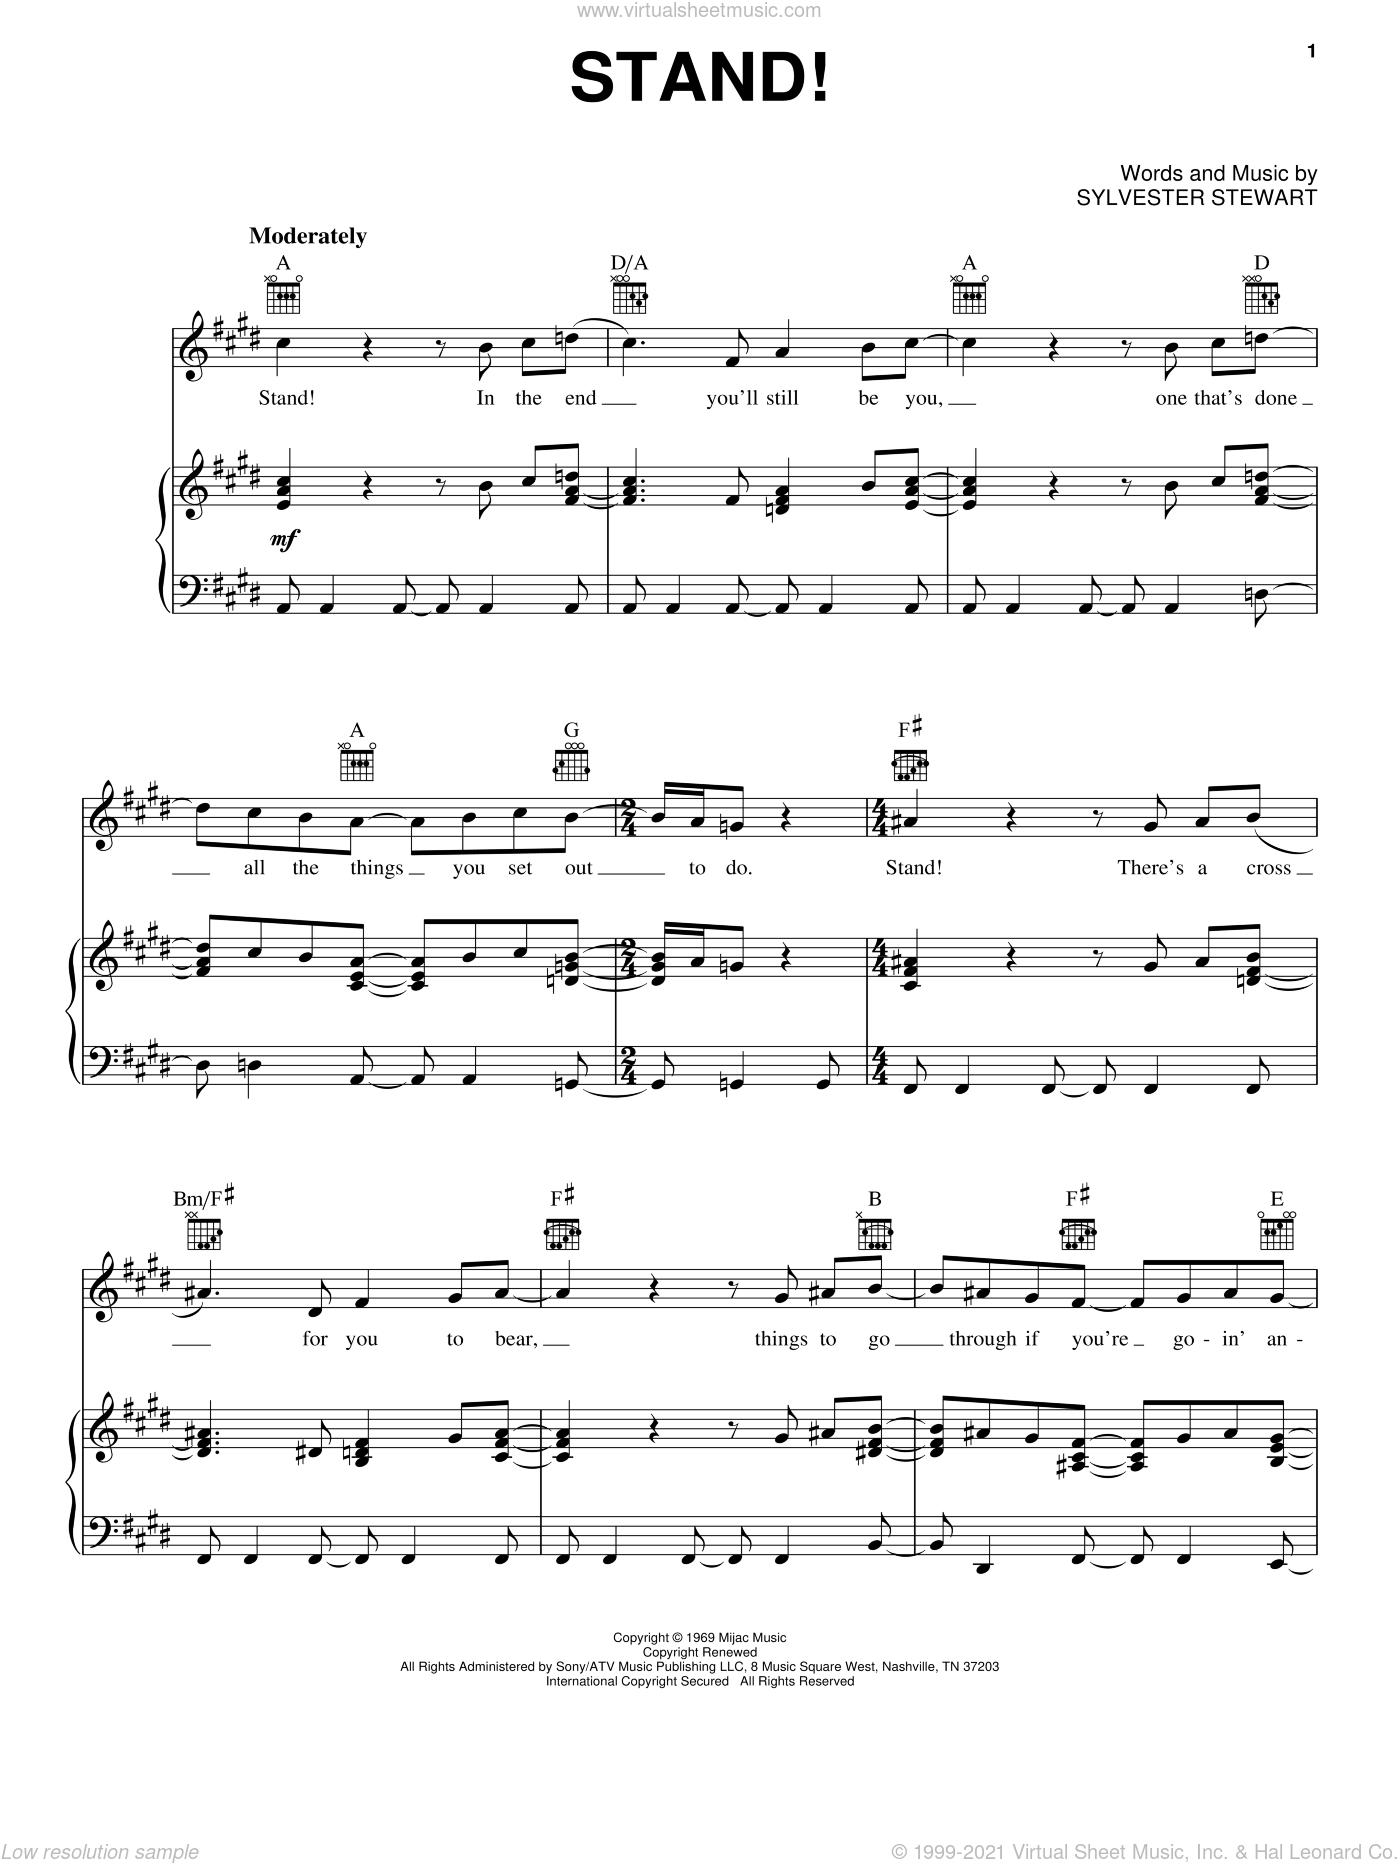 Stand! sheet music for voice, piano or guitar by Sly And The Family Stone and Sylvester Stewart, intermediate skill level